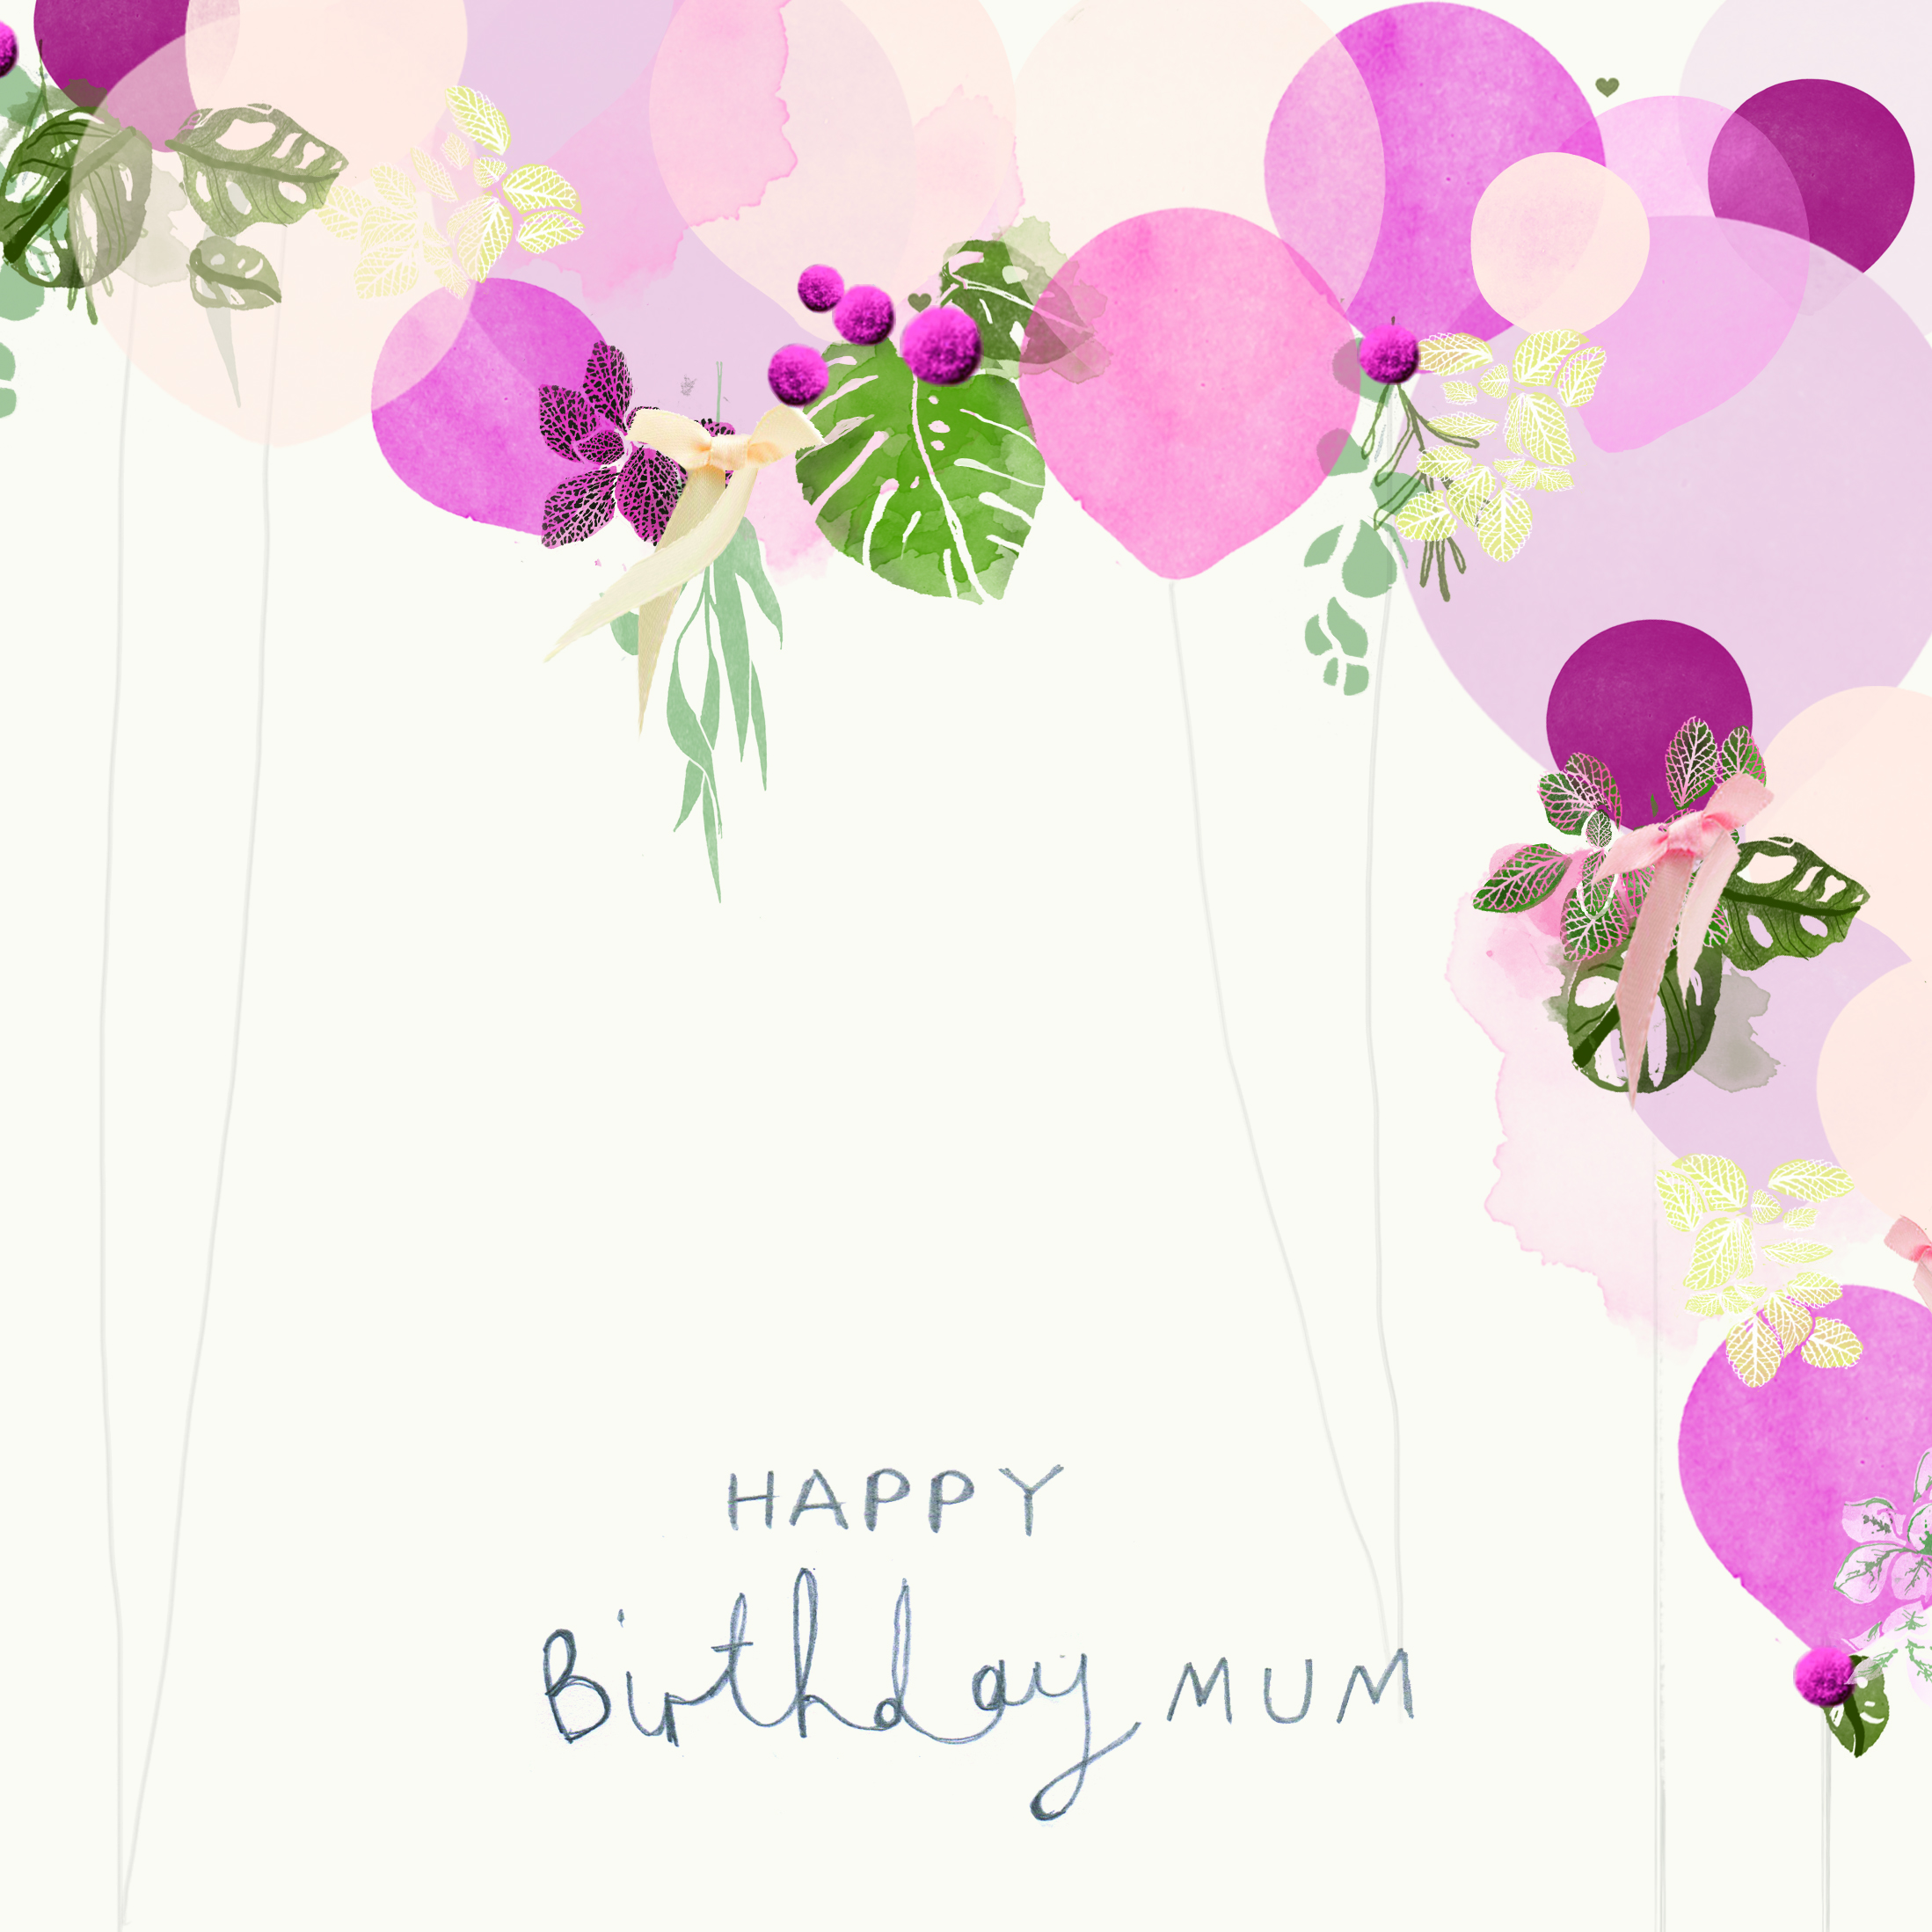 Bryony_Fripp_Illustrator_Mum Birthday Card.jpg